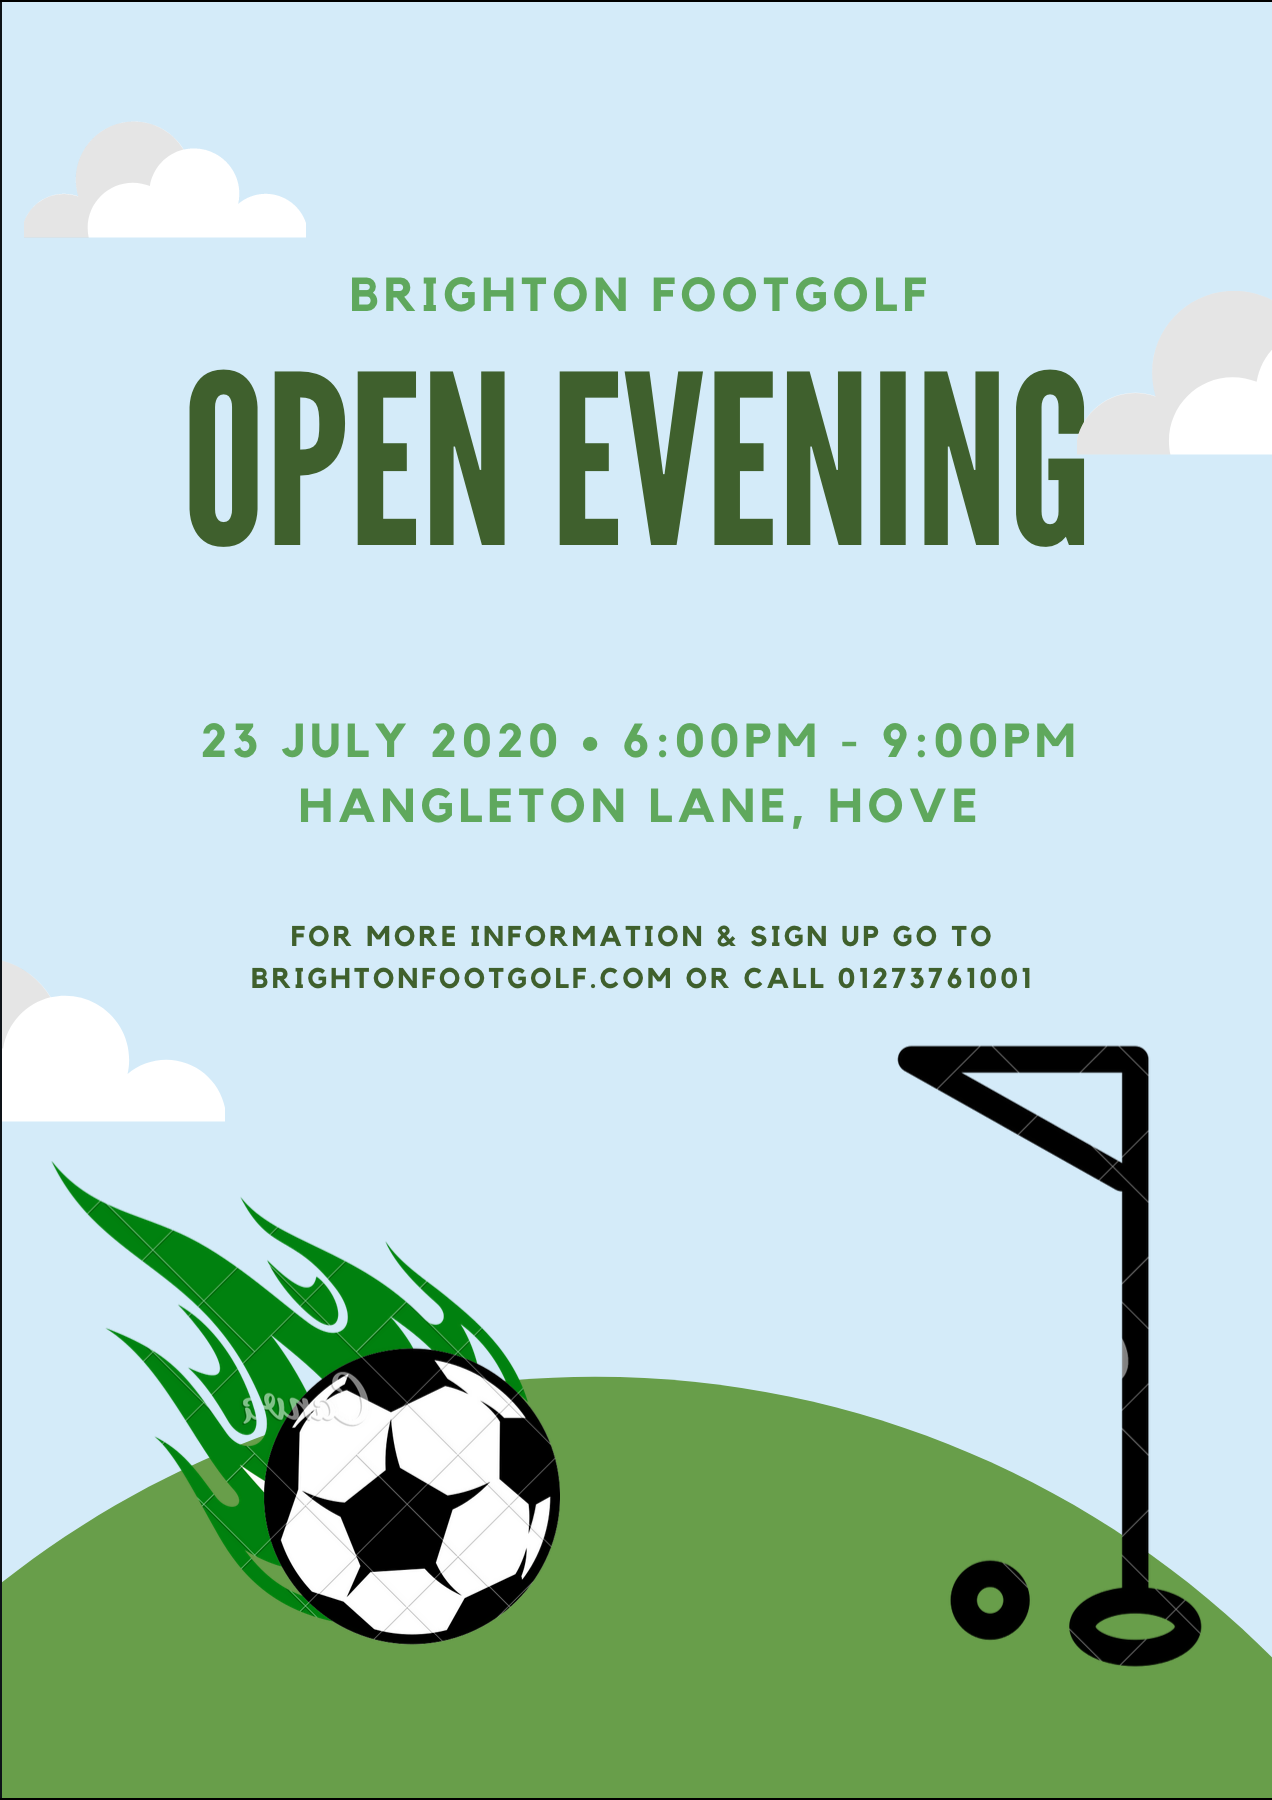 Brighton Footgolf Open Evening